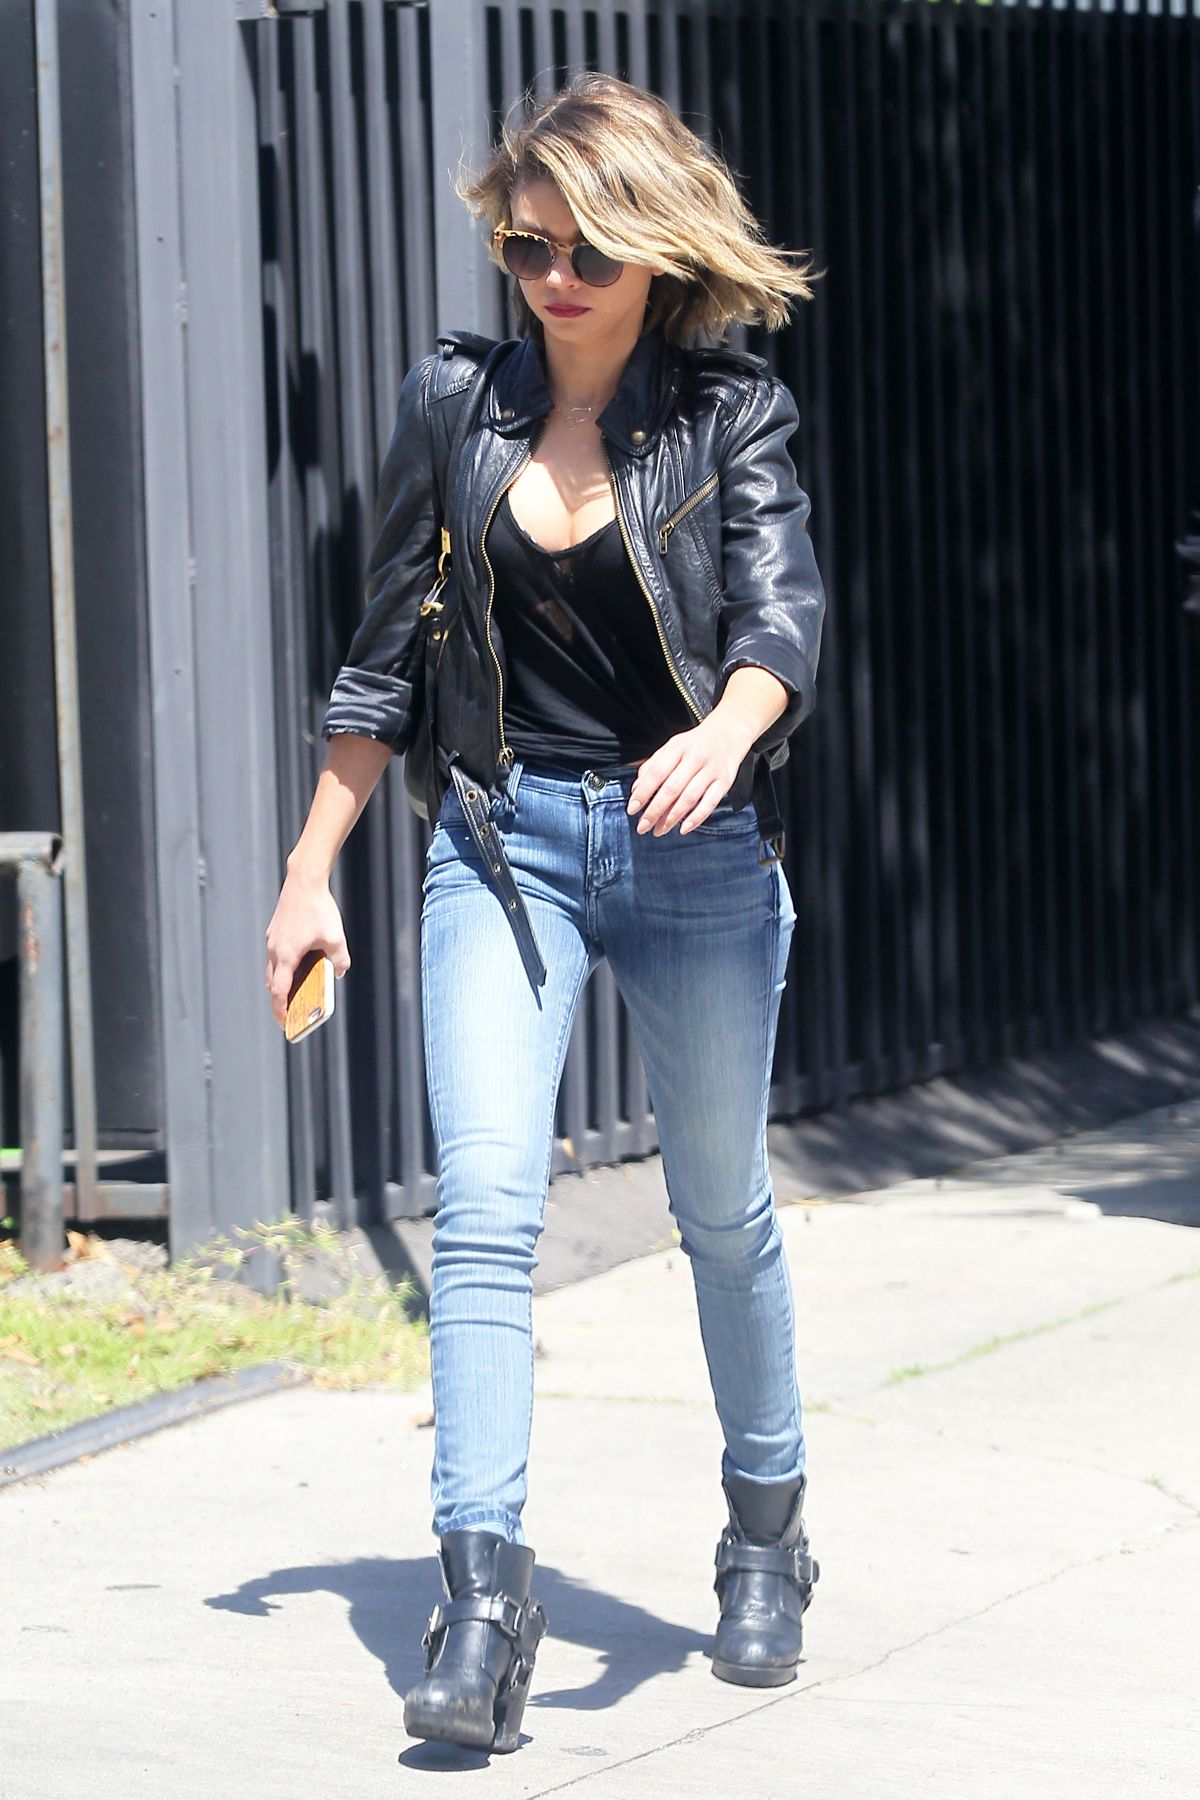 SARAH HYLAND in Jeans Out and About in Los Angeles